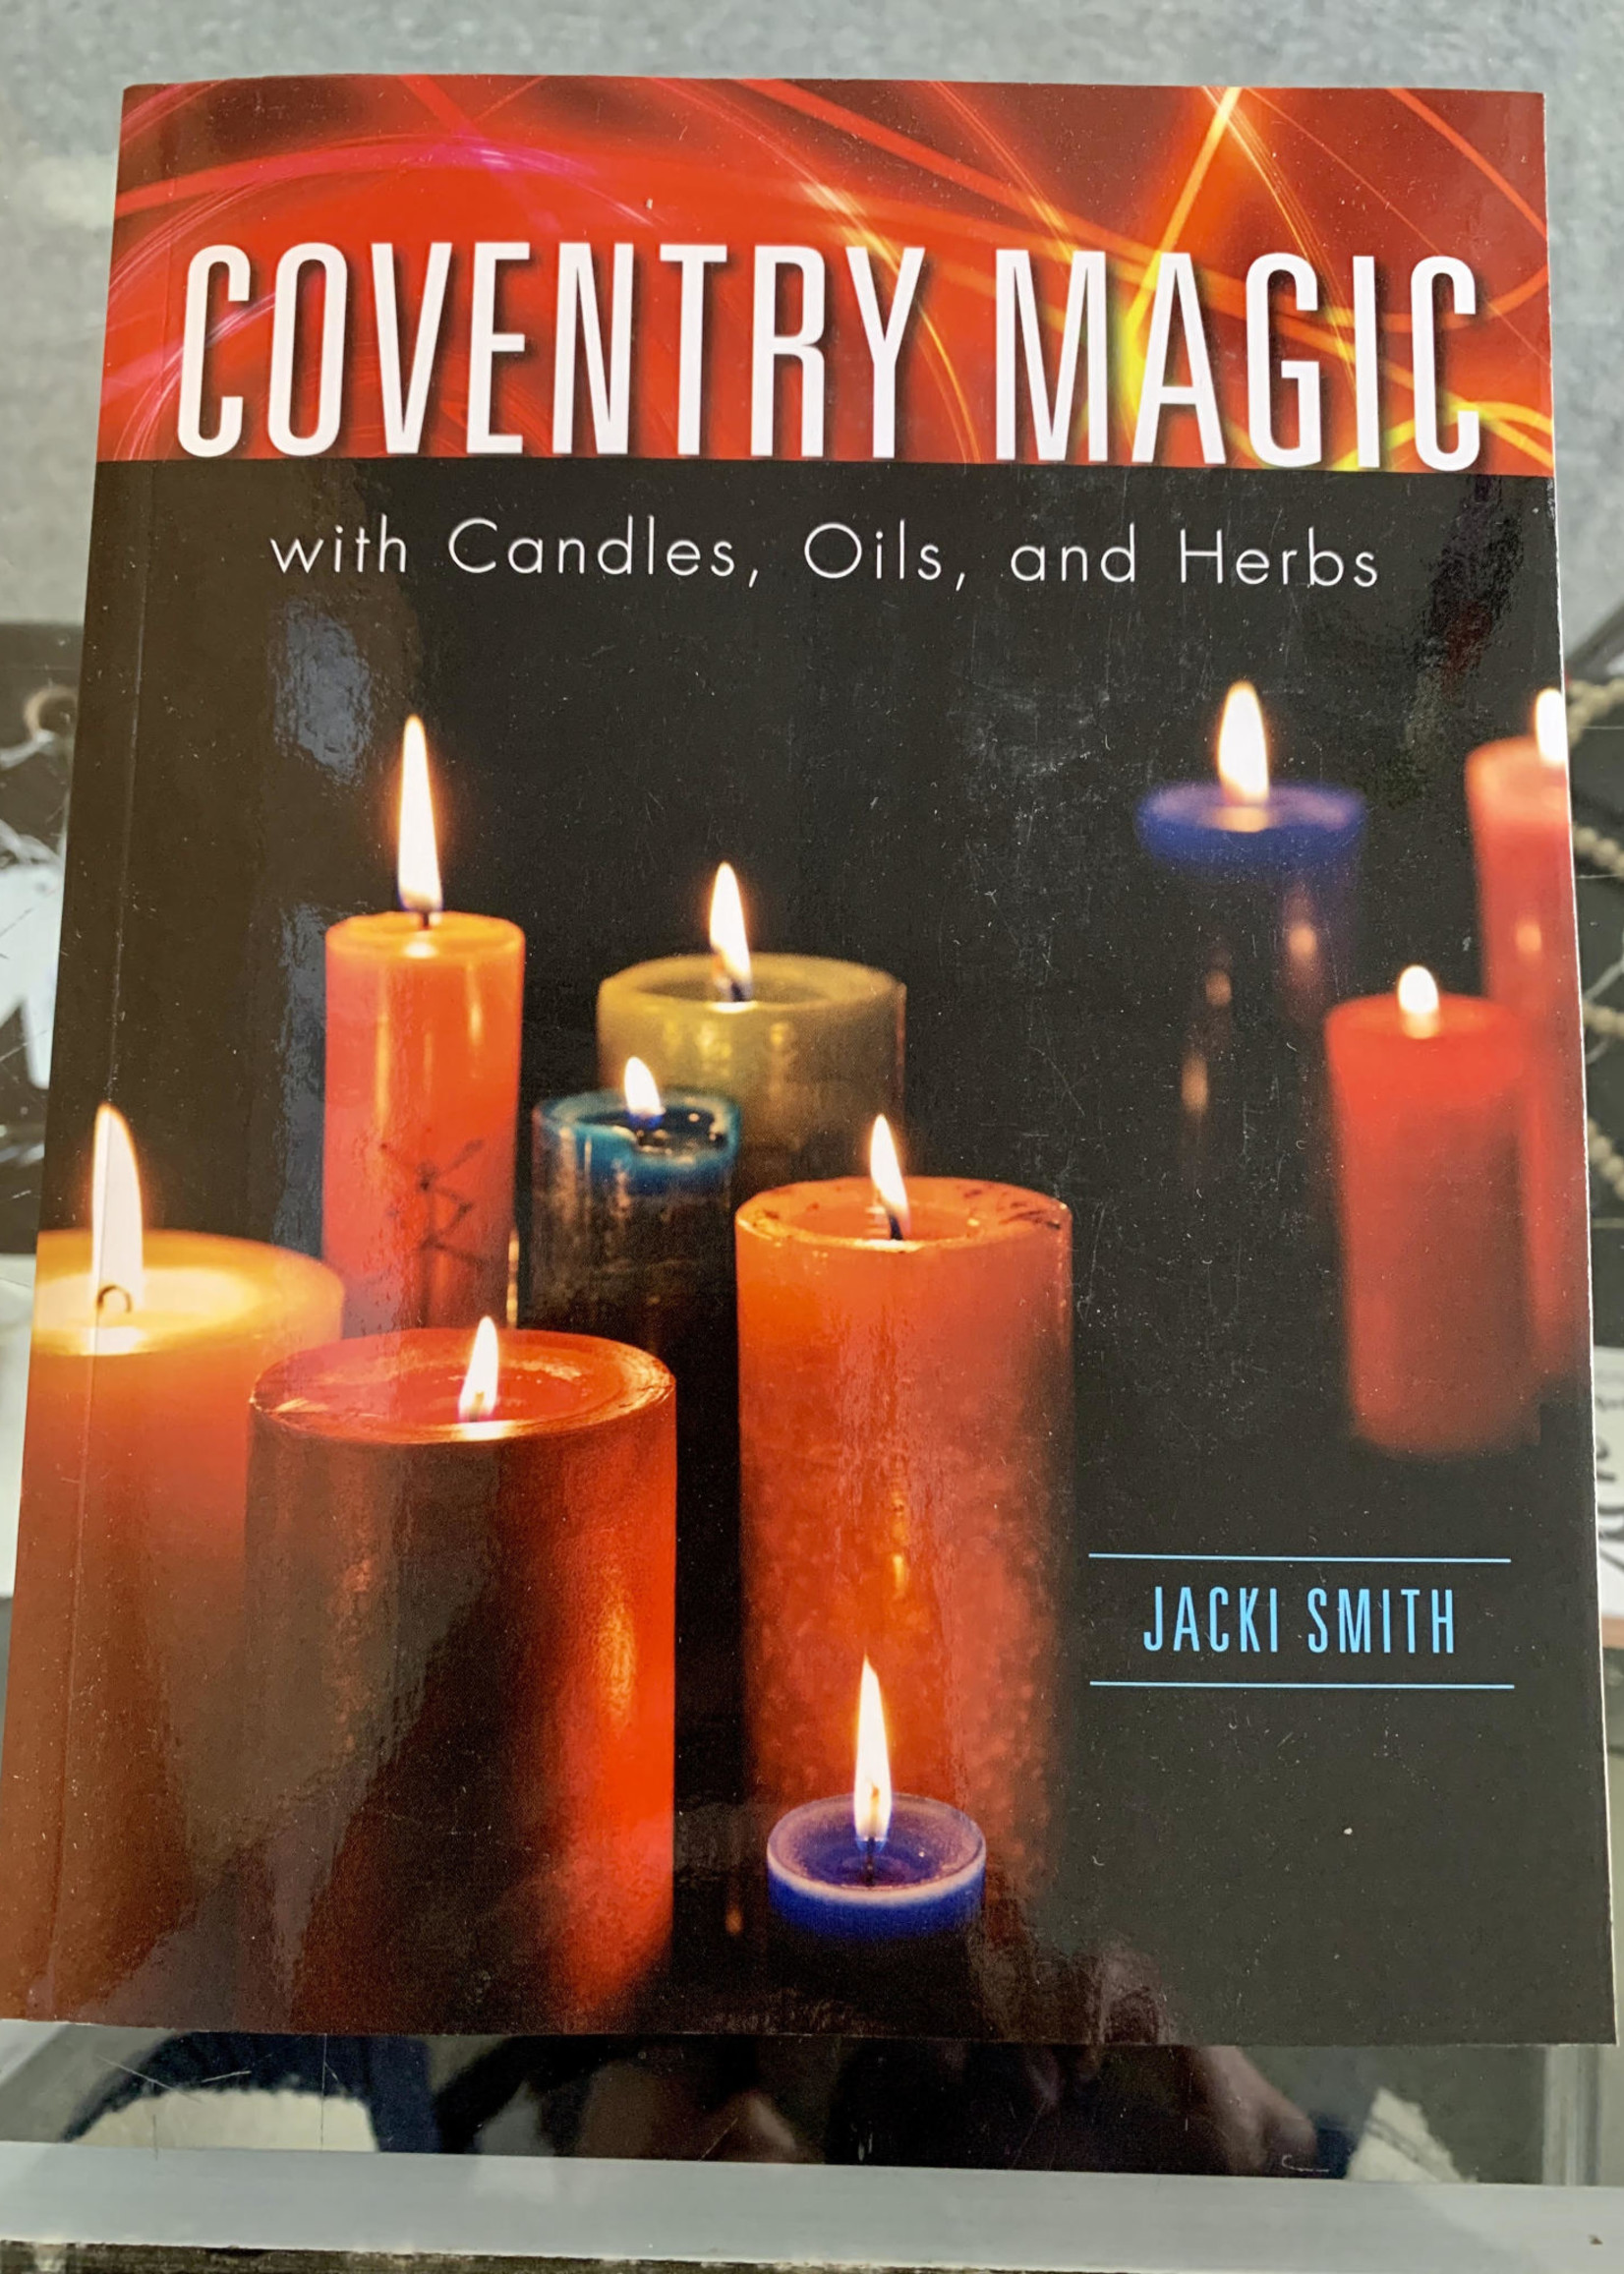 Coventry Magic with Candles, Oils, and Herbs - Jacki Smith